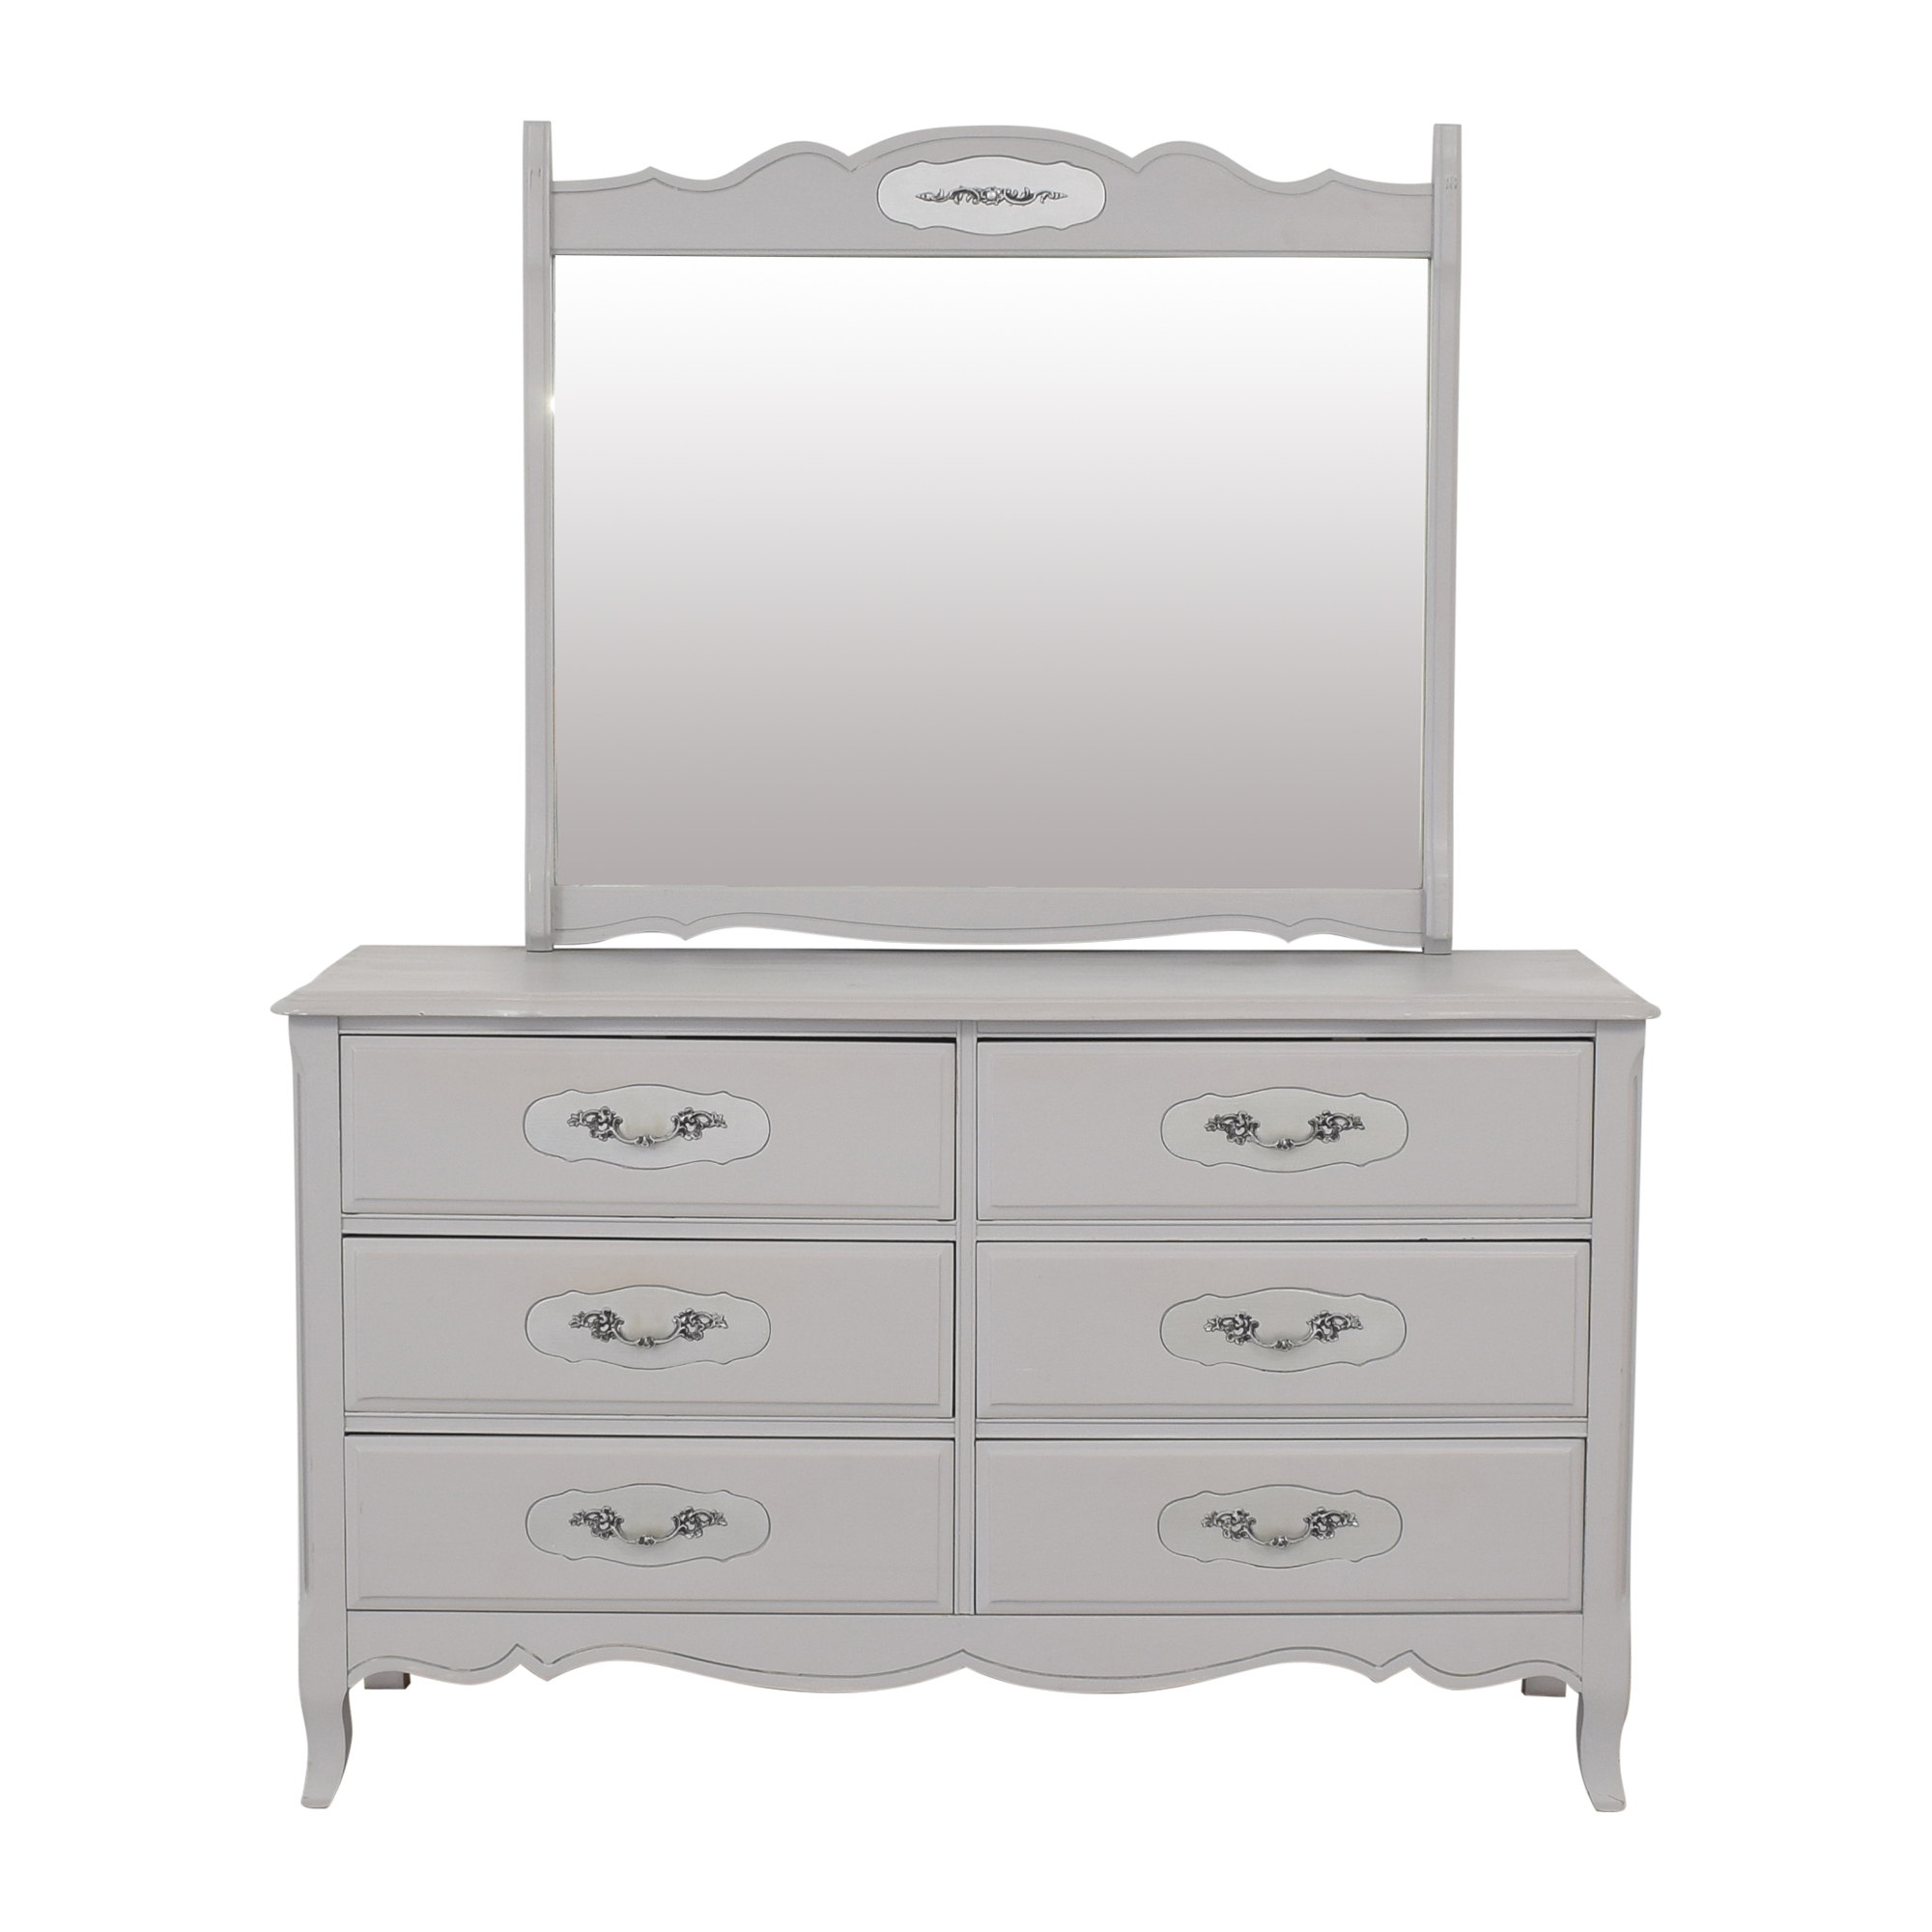 Antique Style Dresser and Mirror ma